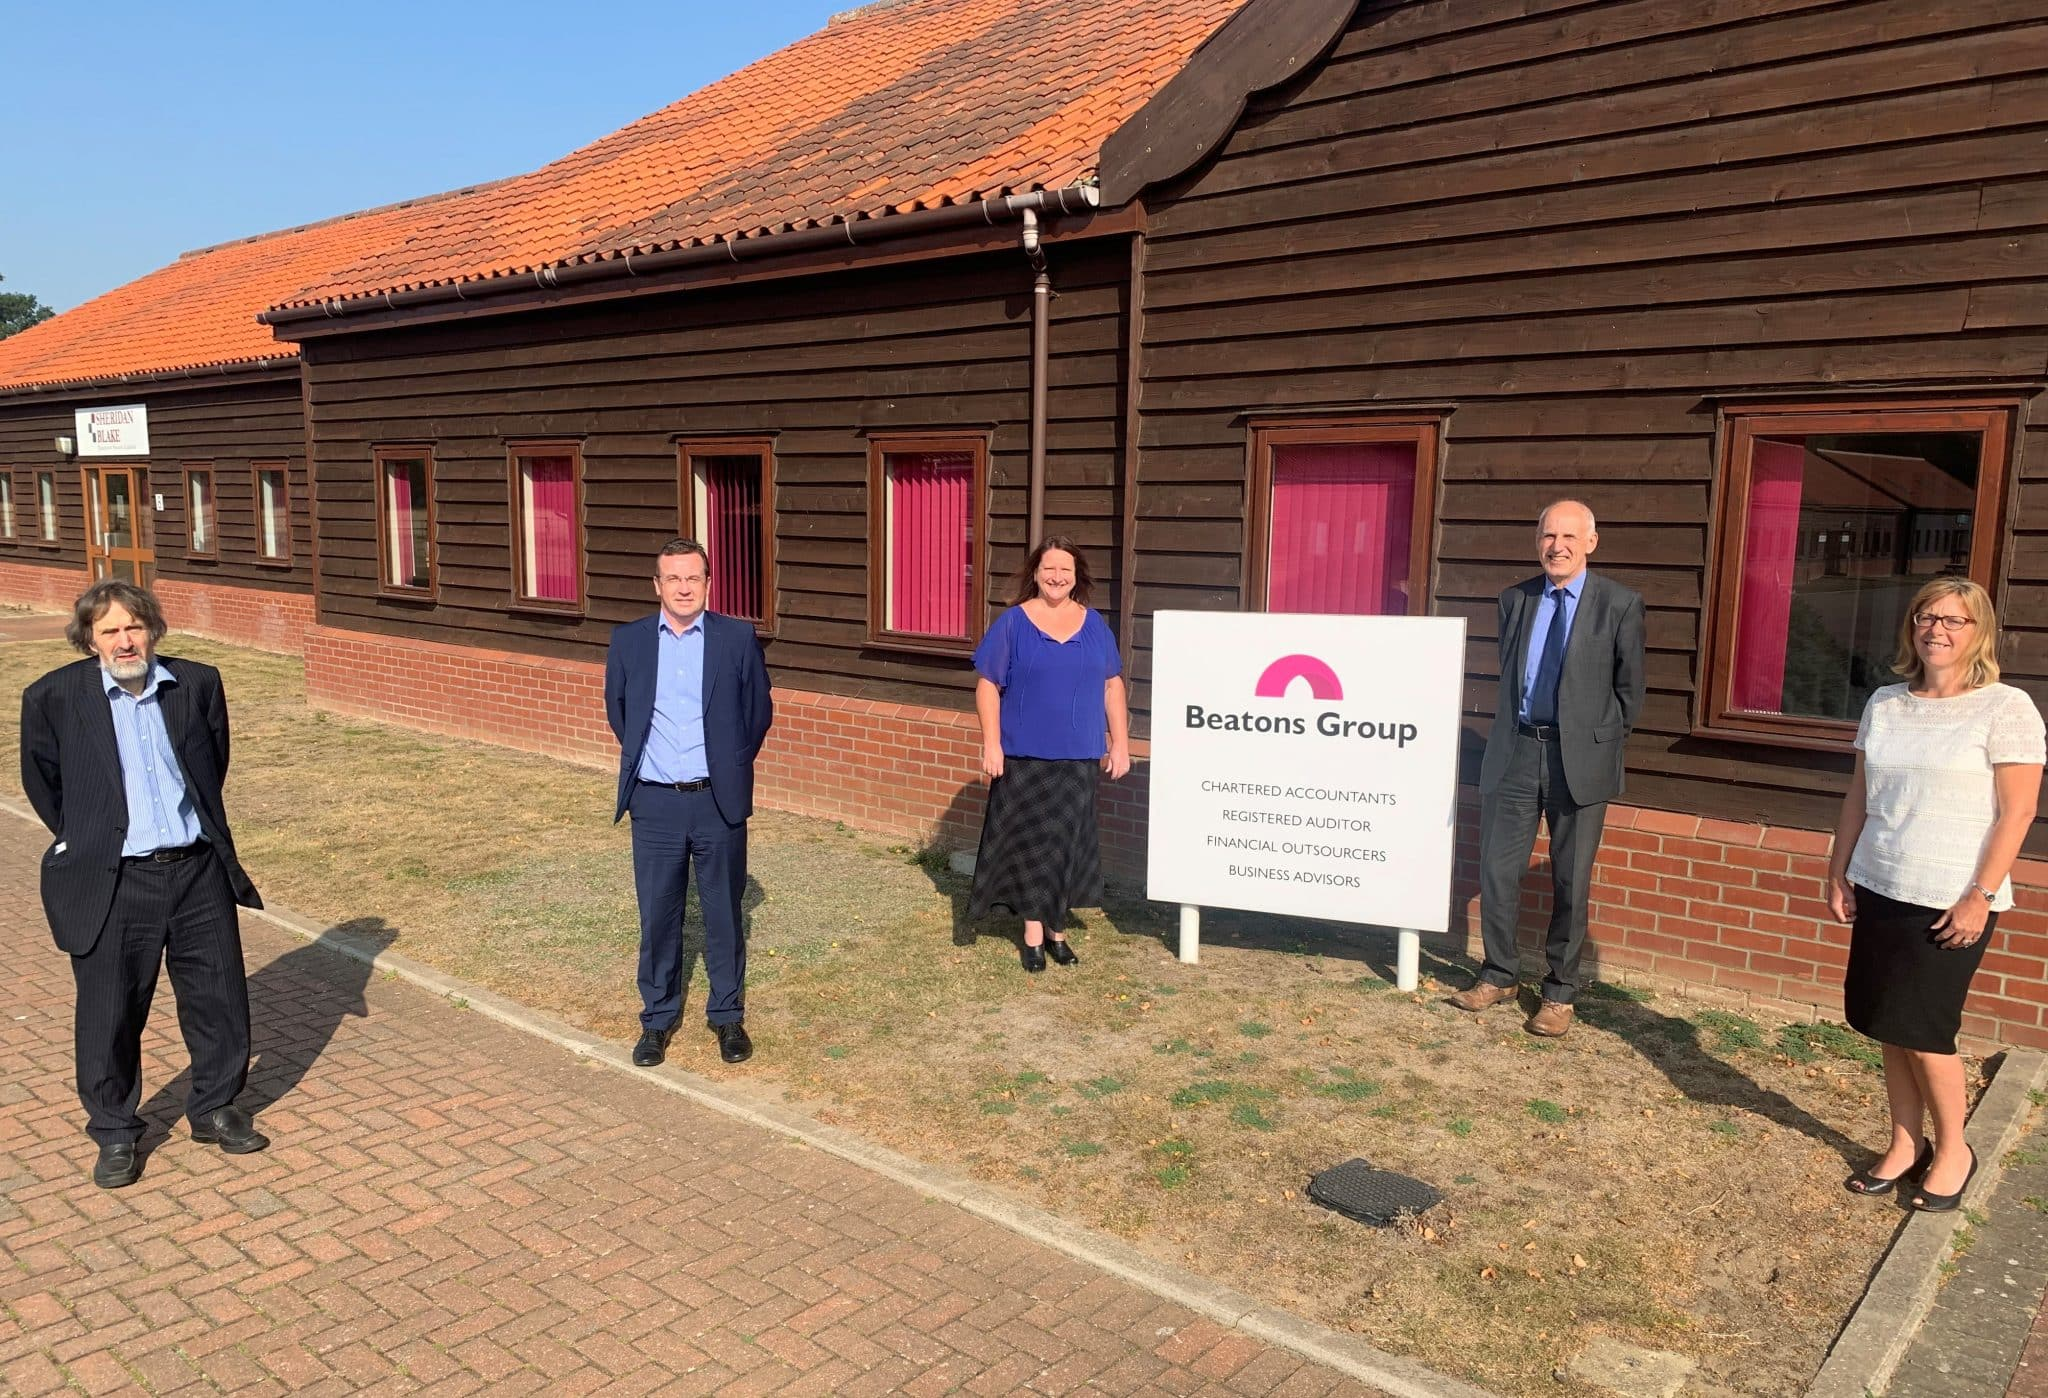 340 years and counting as accountancy firm bucks trend